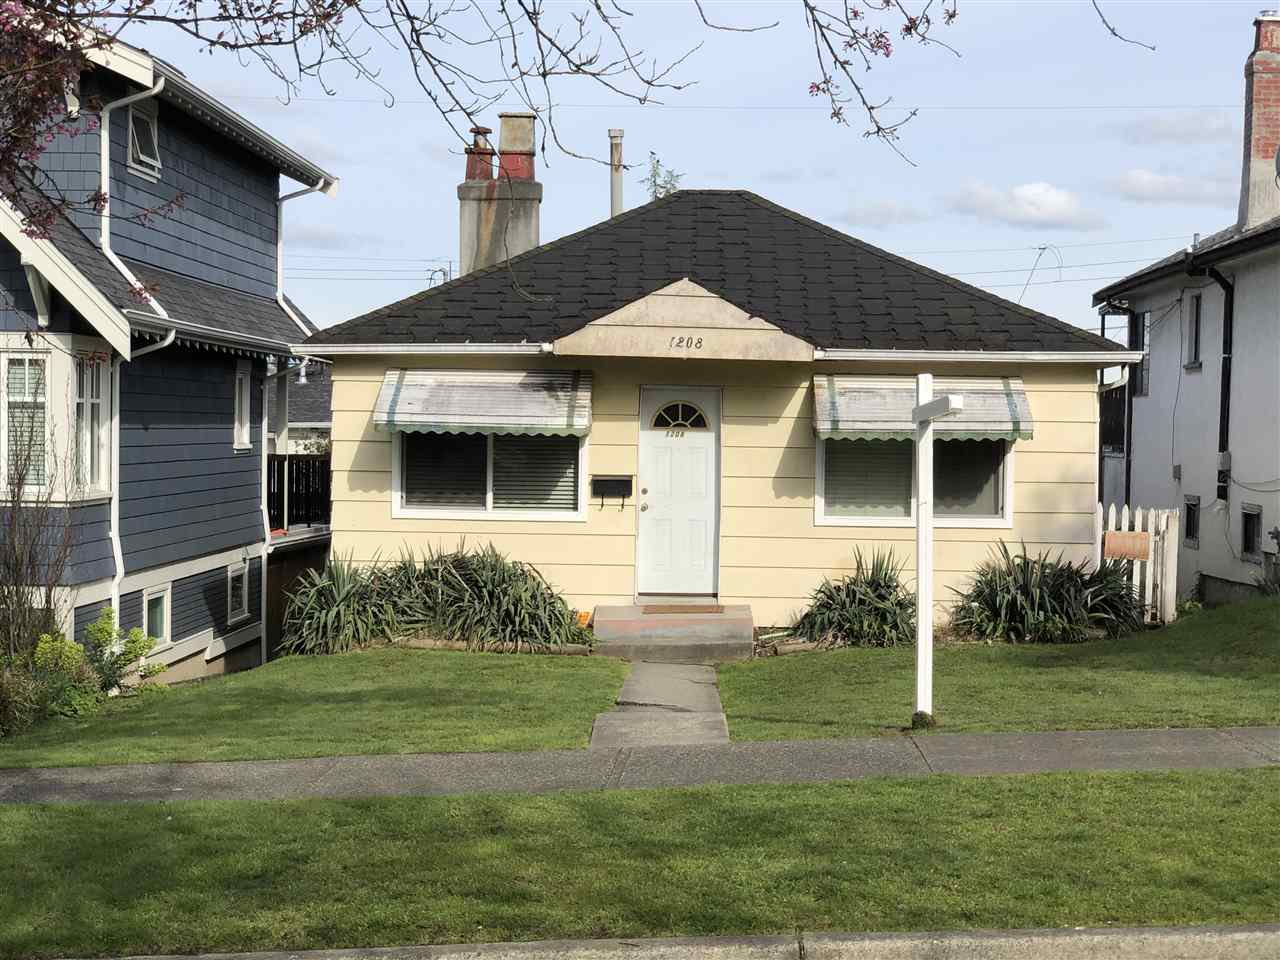 Main Photo: 1208 NOOTKA Street in Vancouver: Renfrew VE House for sale (Vancouver East)  : MLS®# R2359713